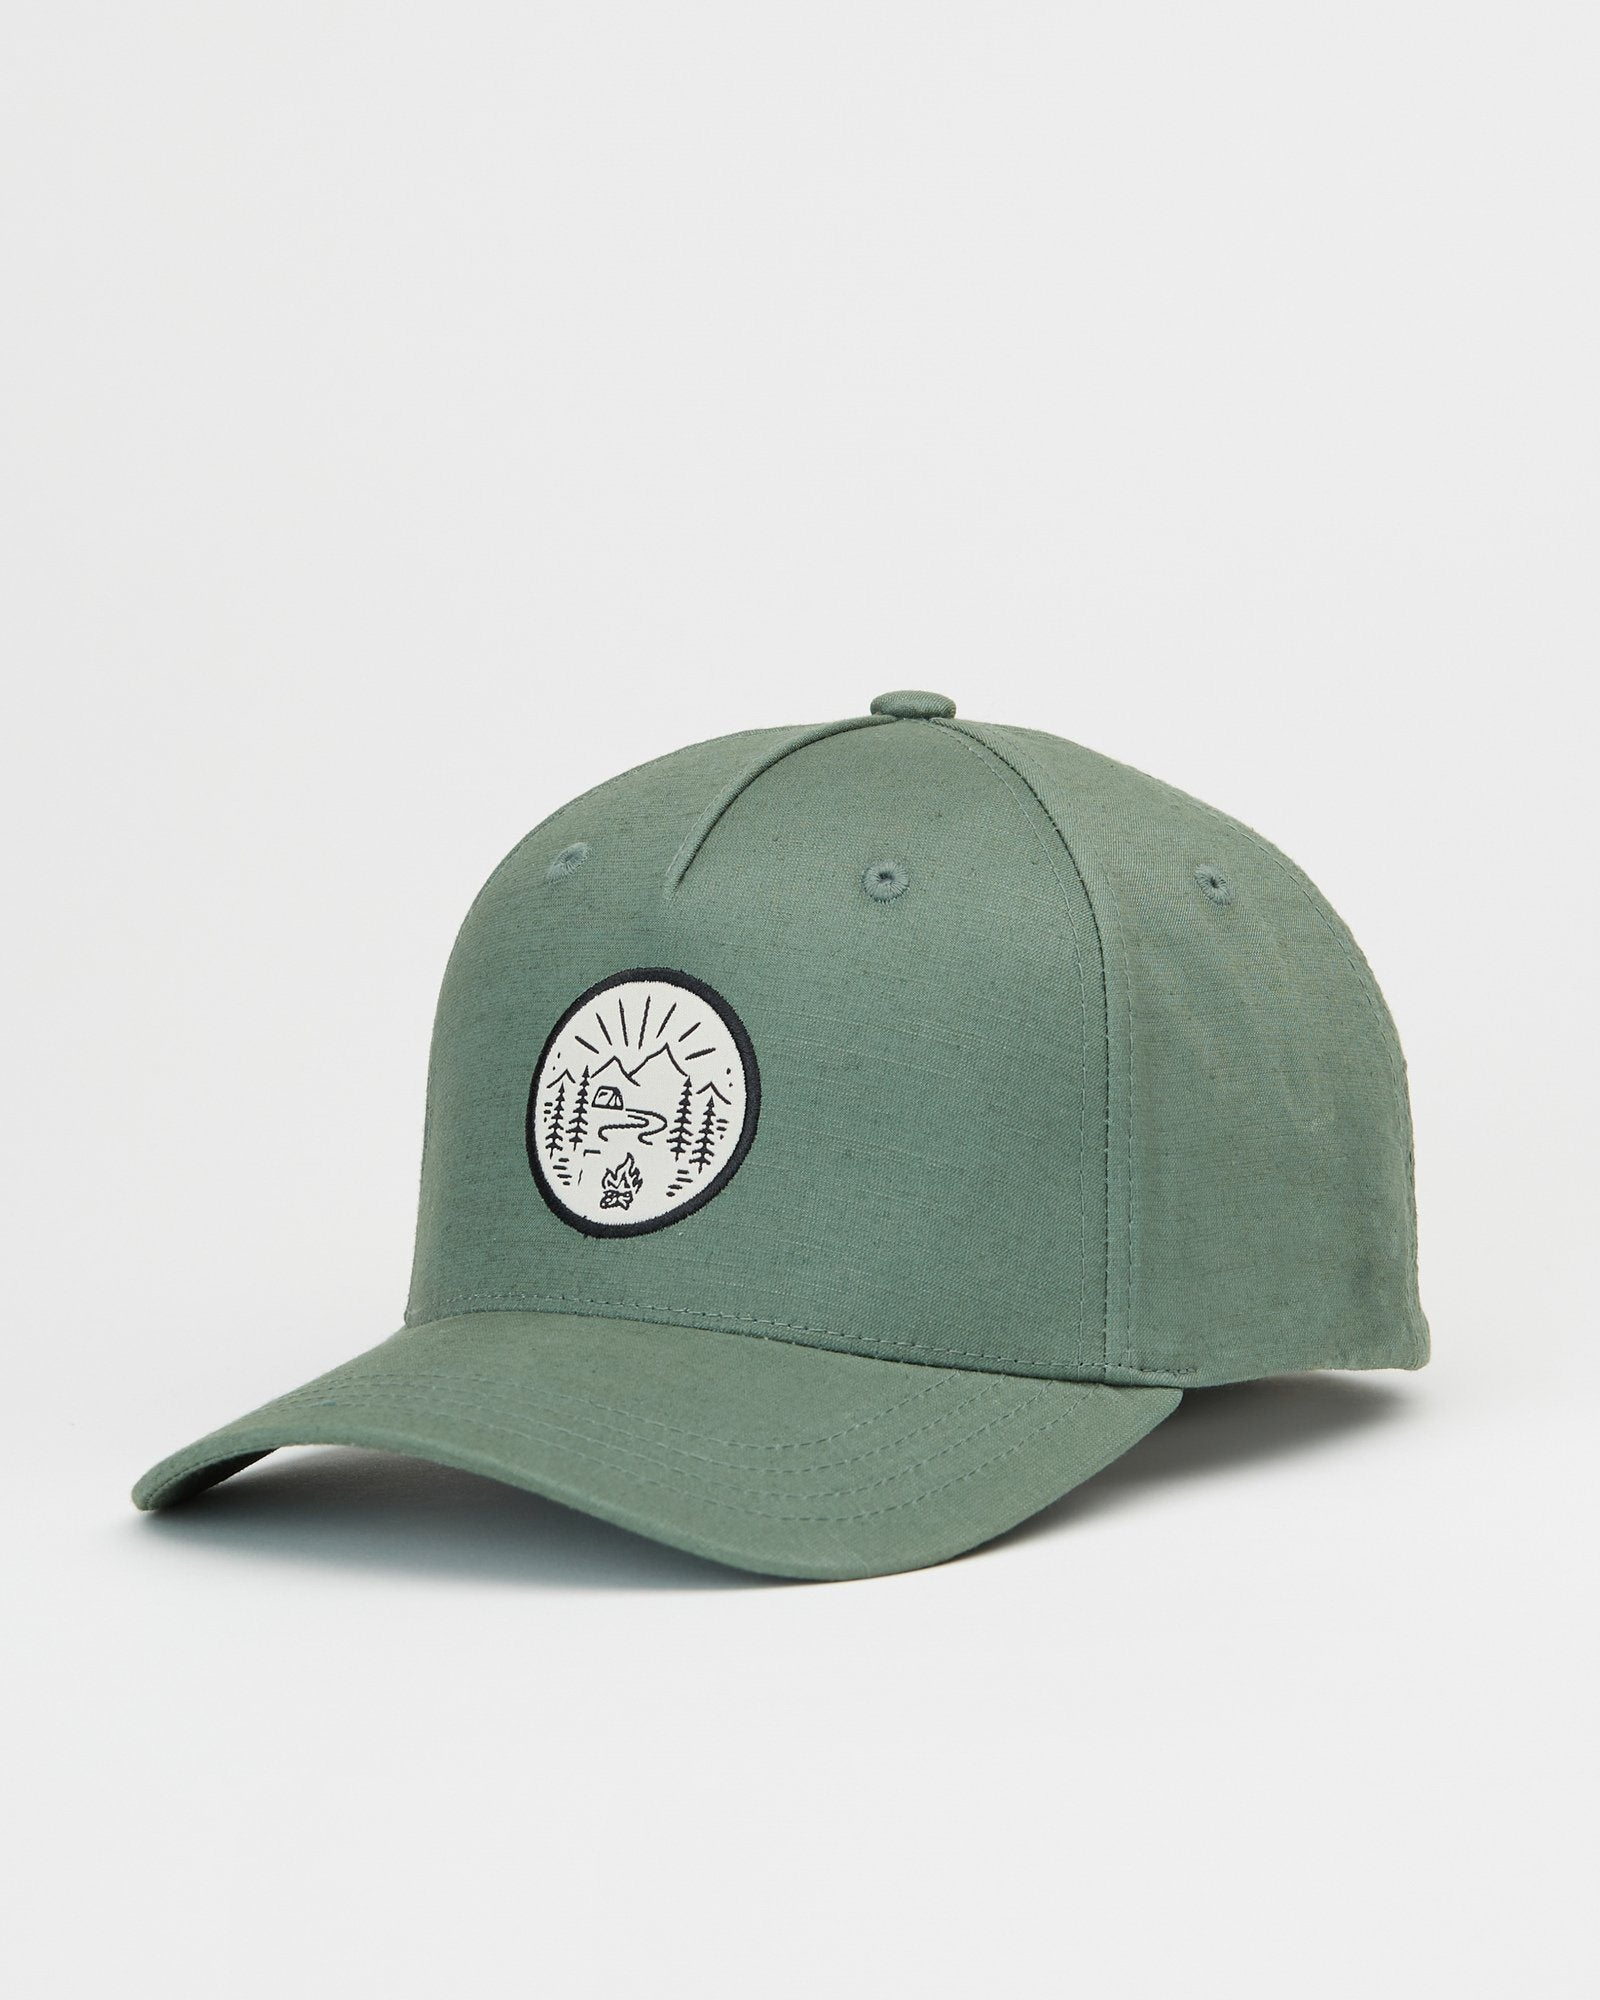 Tentree - 5 Panel Altitude Hat - Weekendbee - sustainable sportswear